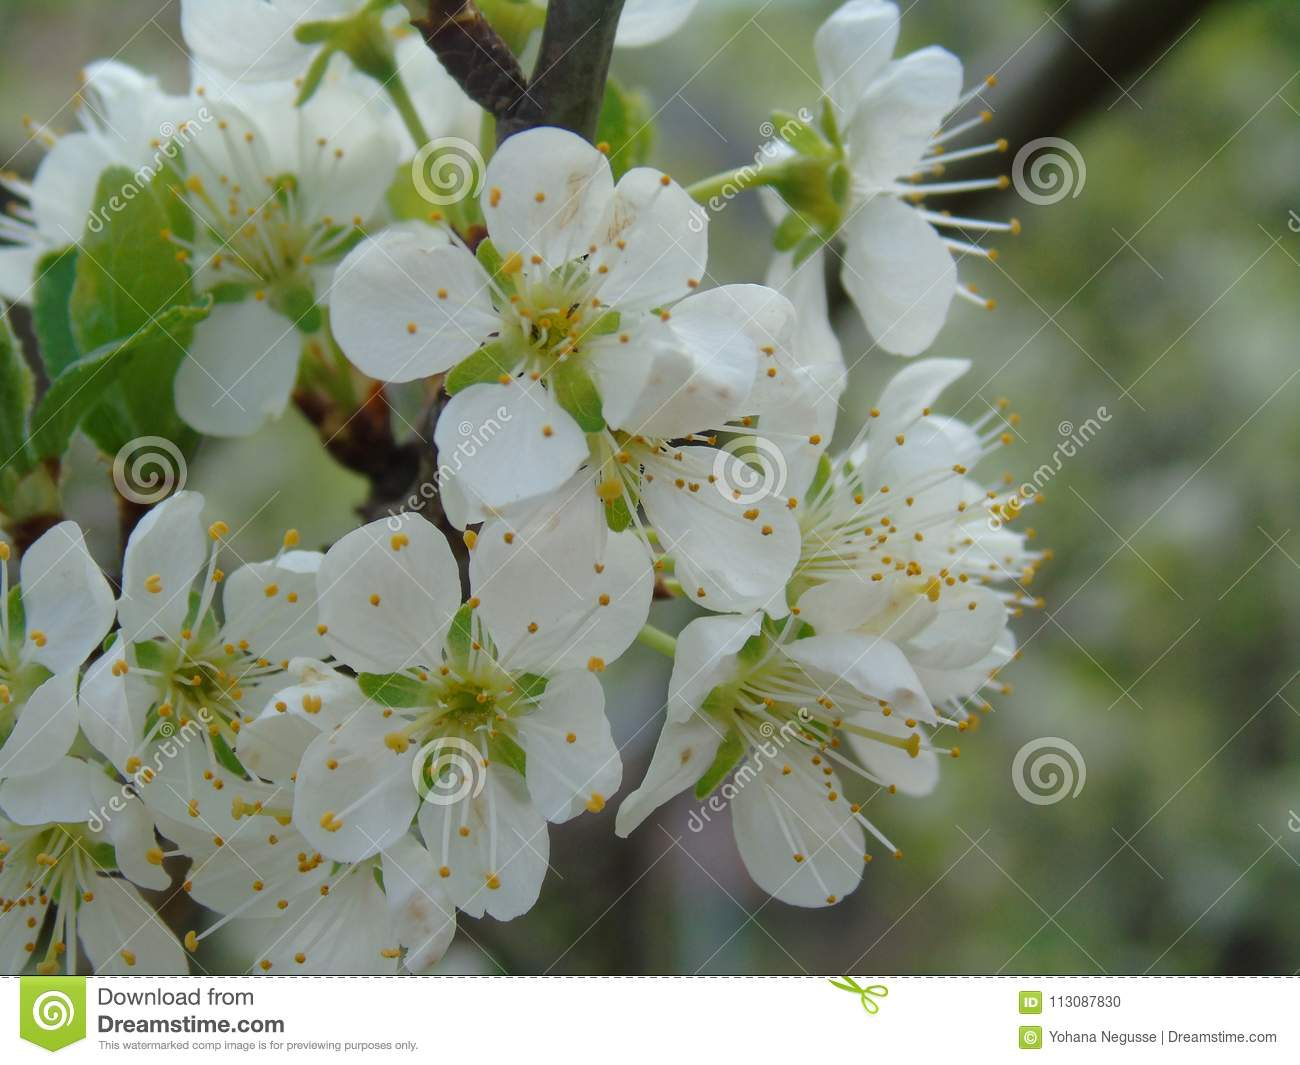 Some beautiful flowers from the village stock photo image of apple download some beautiful flowers from the village stock photo image of apple background izmirmasajfo